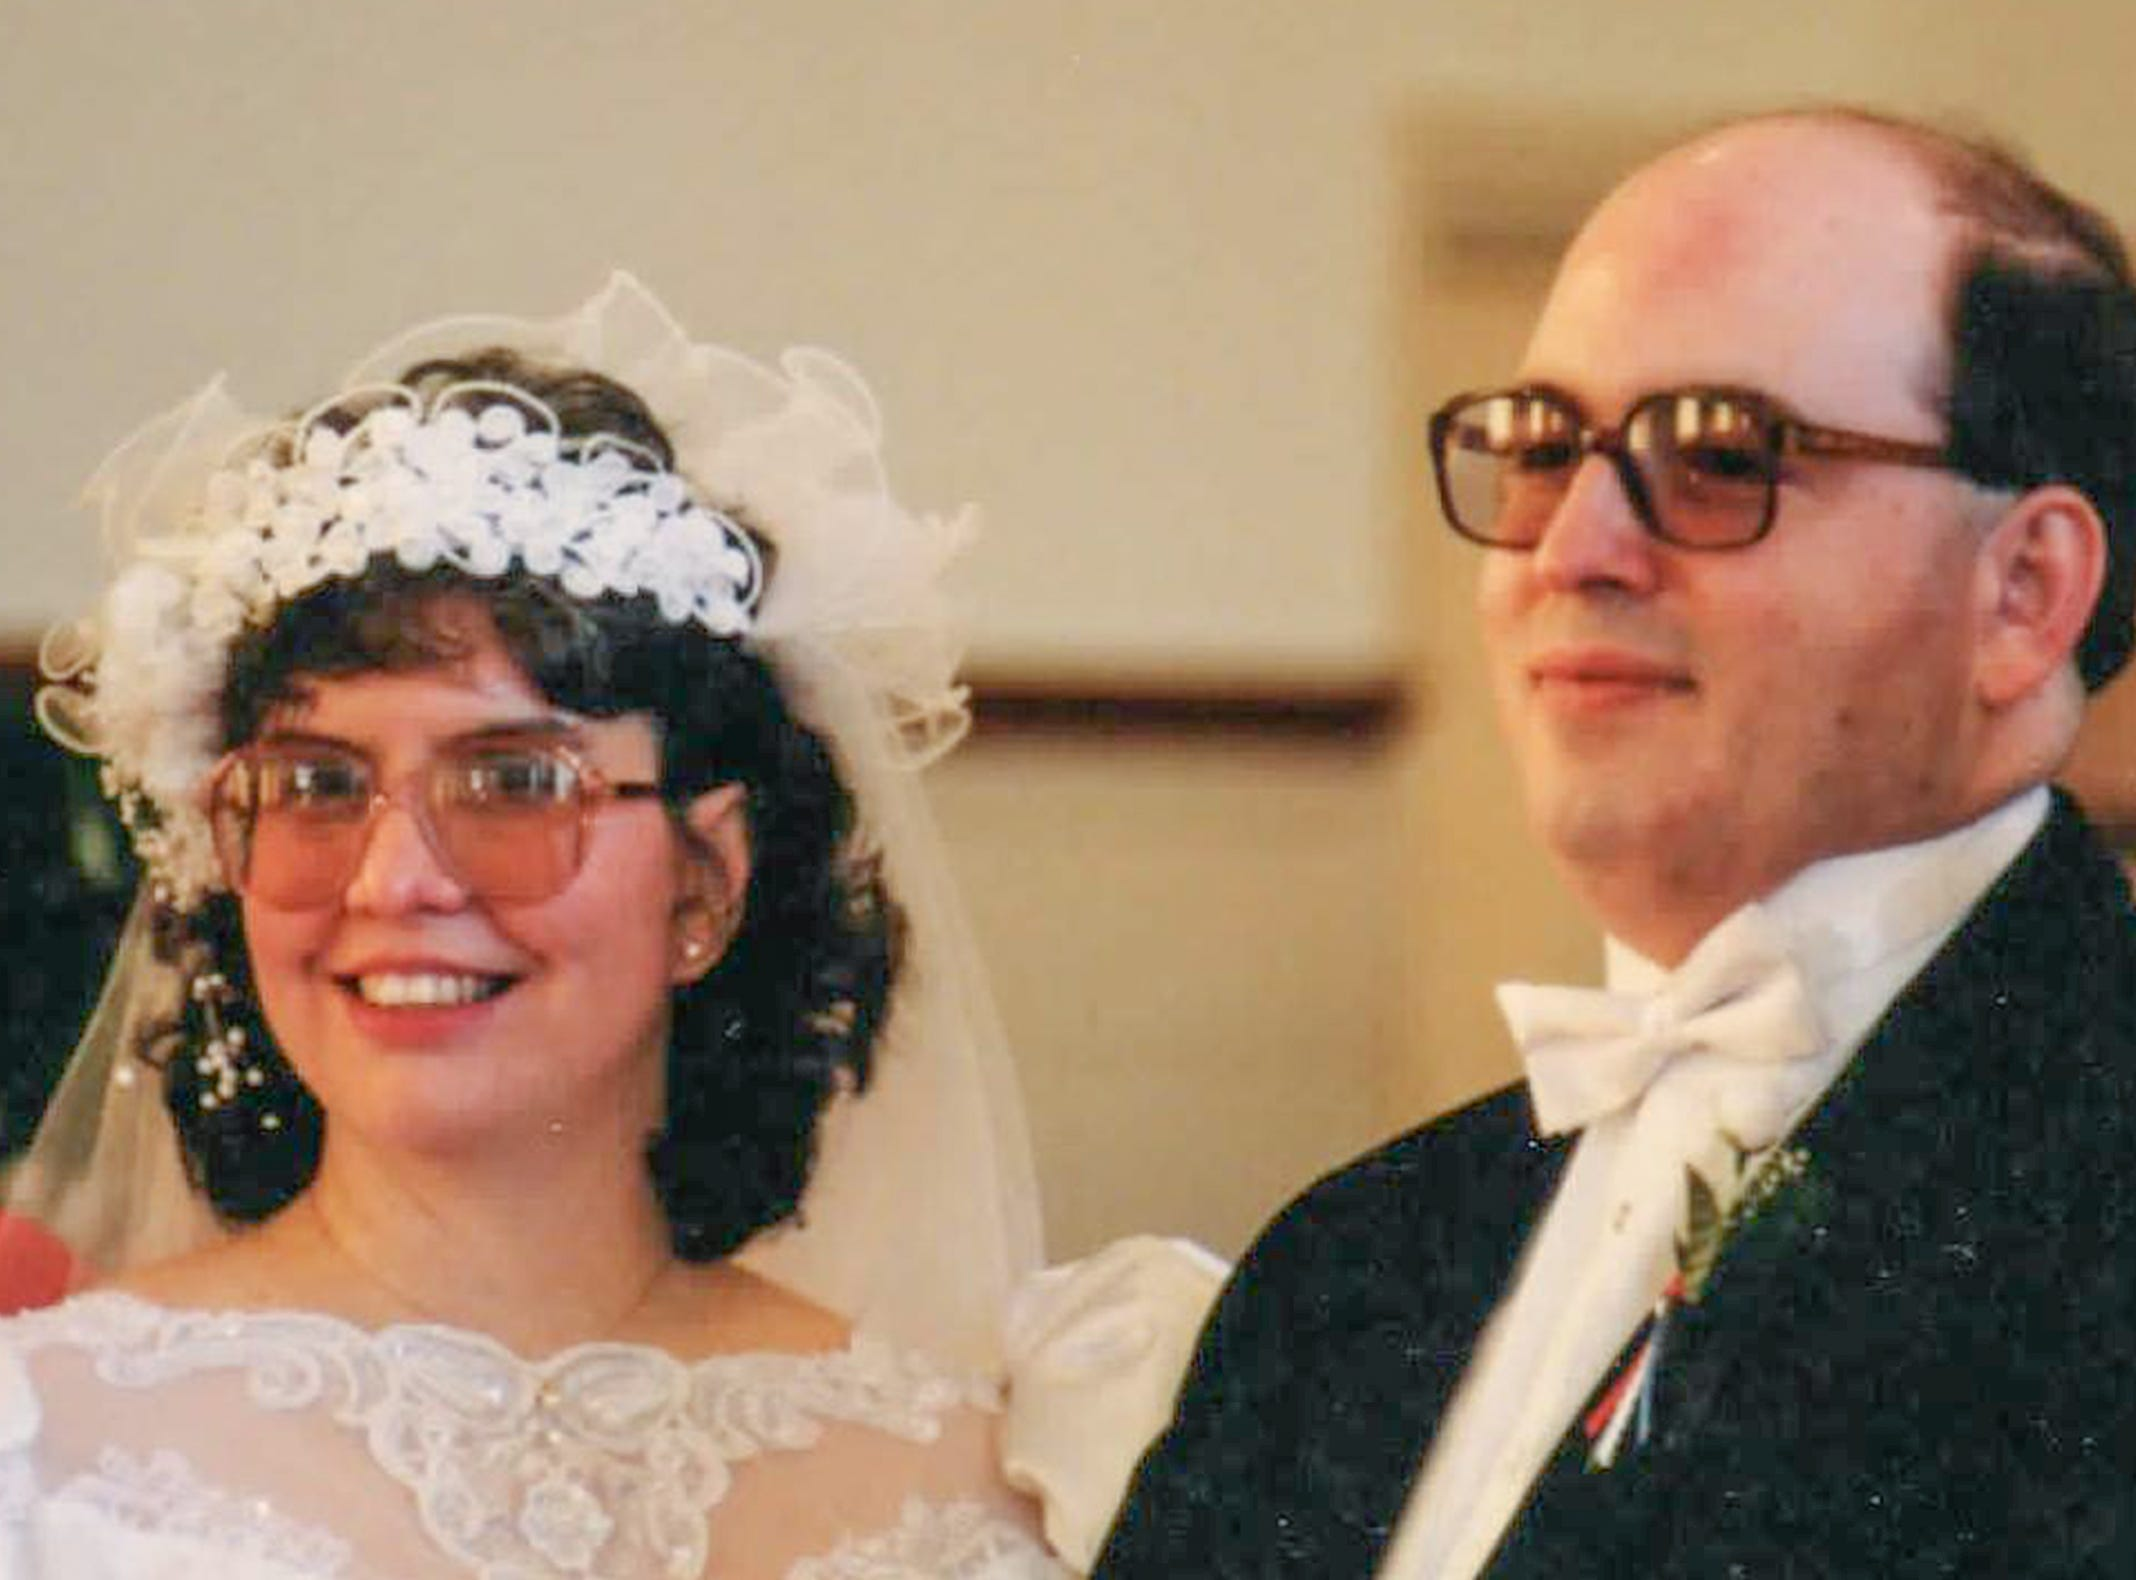 Richard and Linda Dupont of Easley at their wedding in 1991.